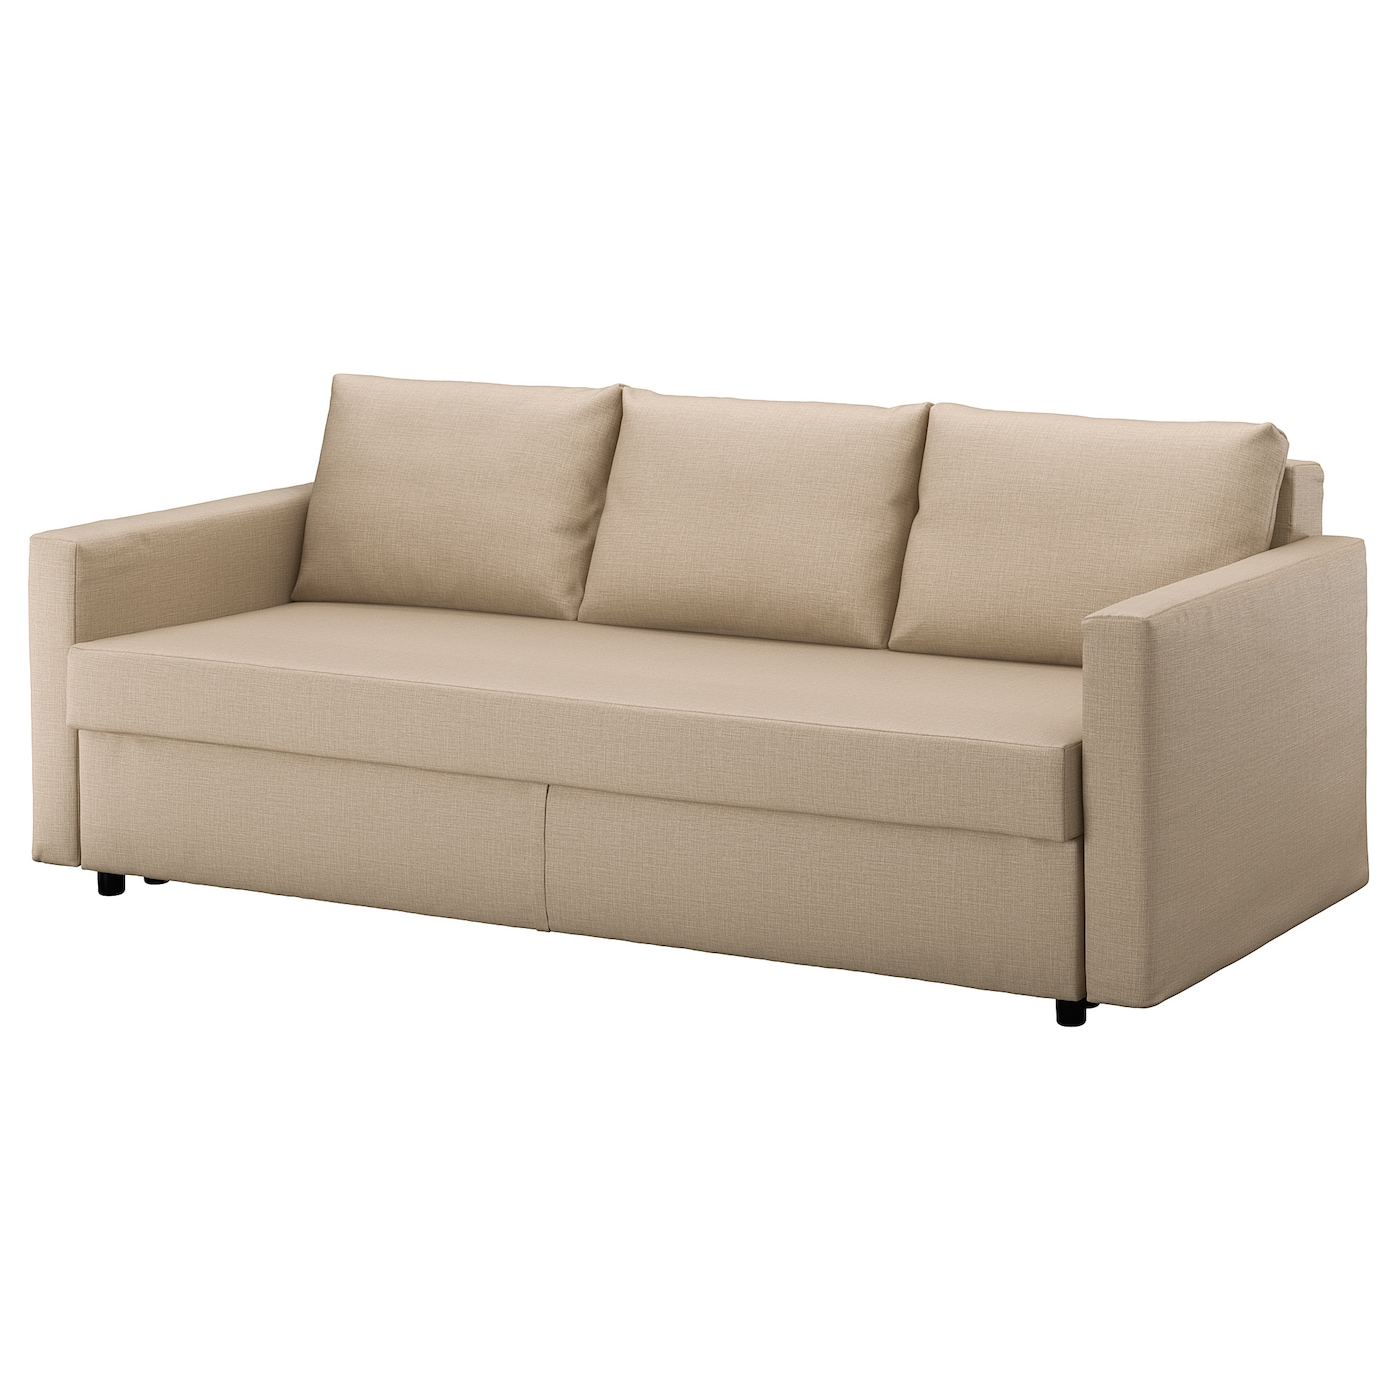 Friheten three seat sofa bed skiftebo beige ikea for Sofas precios baratos